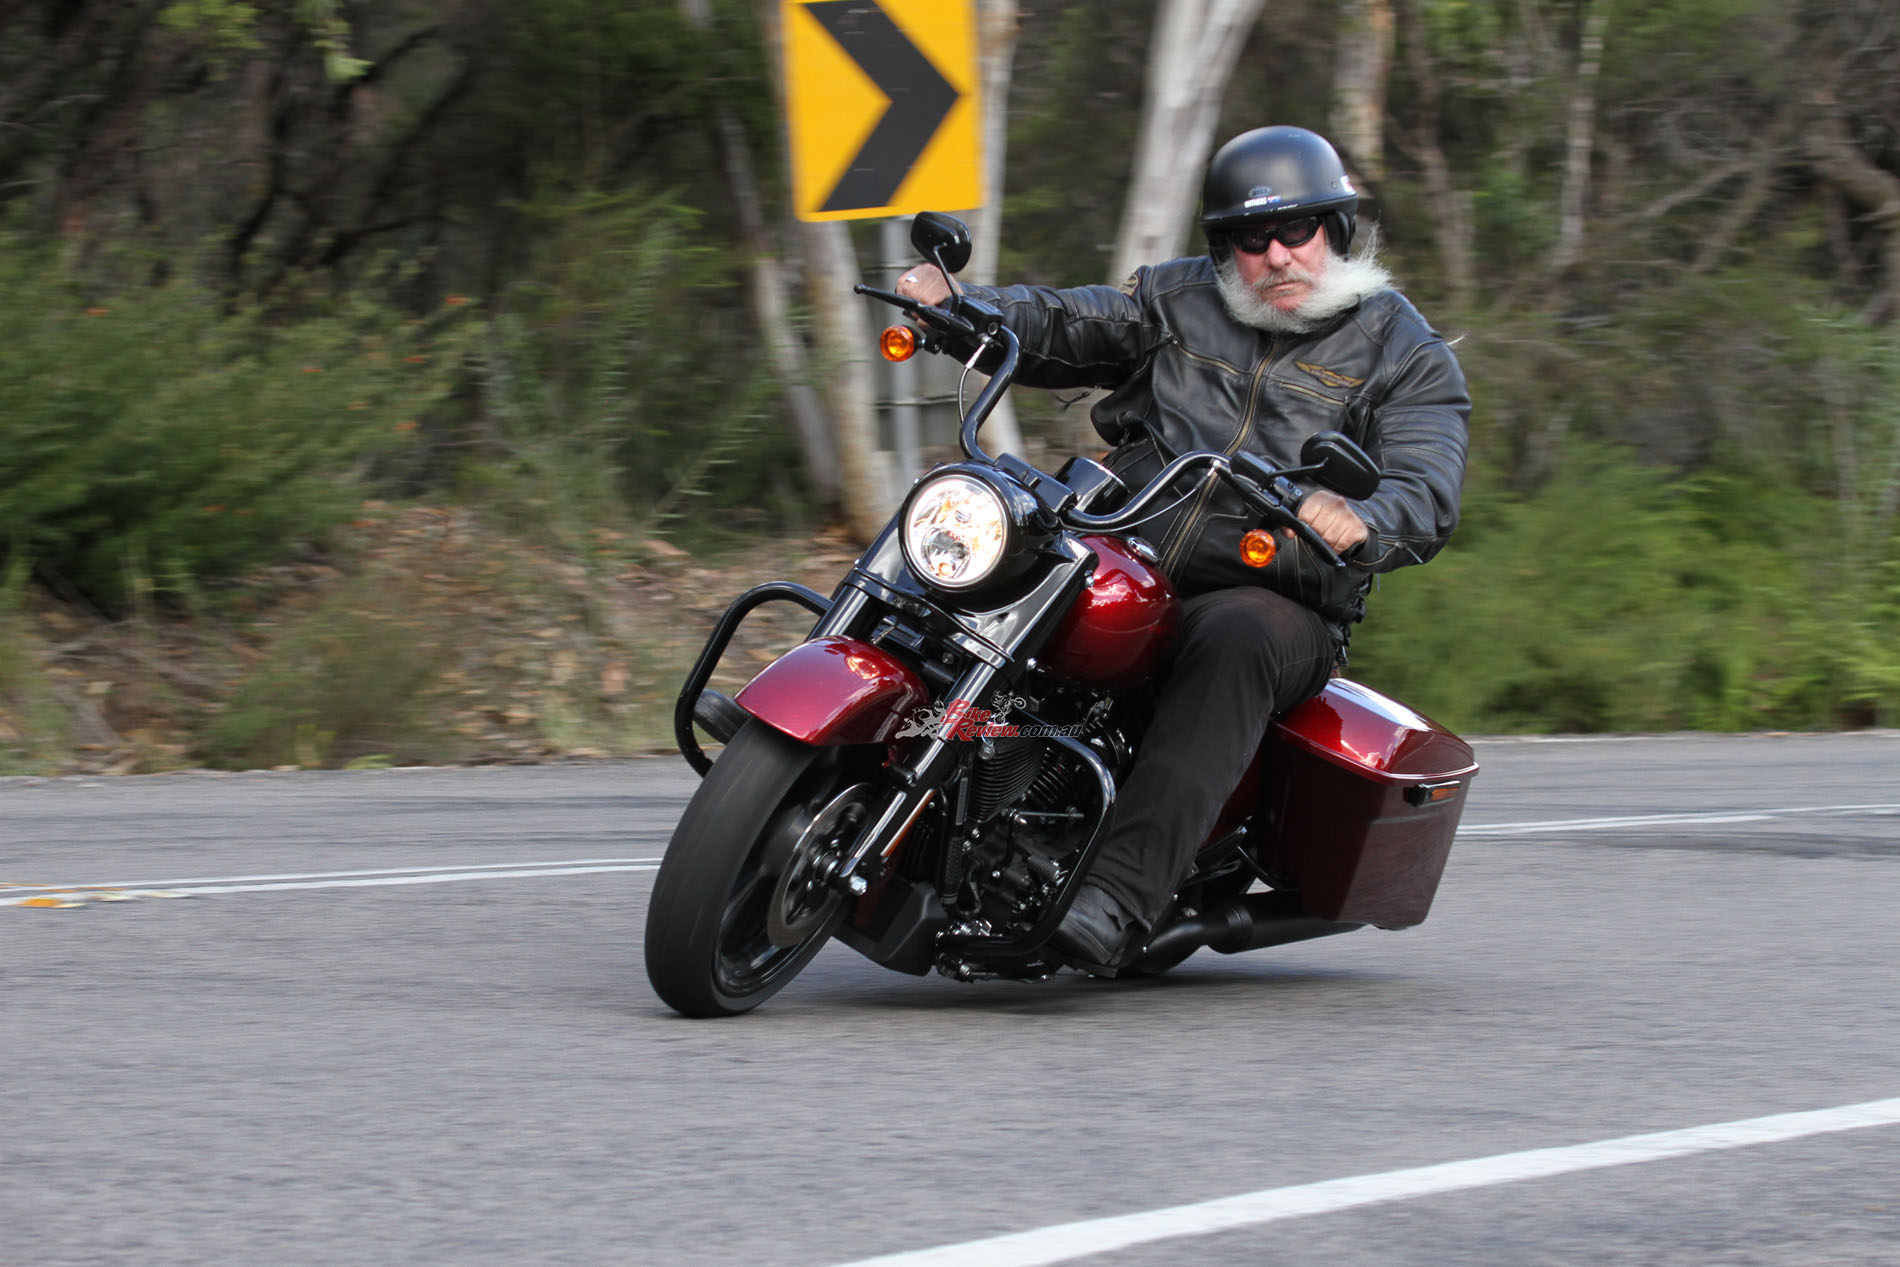 Harley Davidson Saddlebags >> Video Review: 2017 Harley-Davidson Road King Special ...